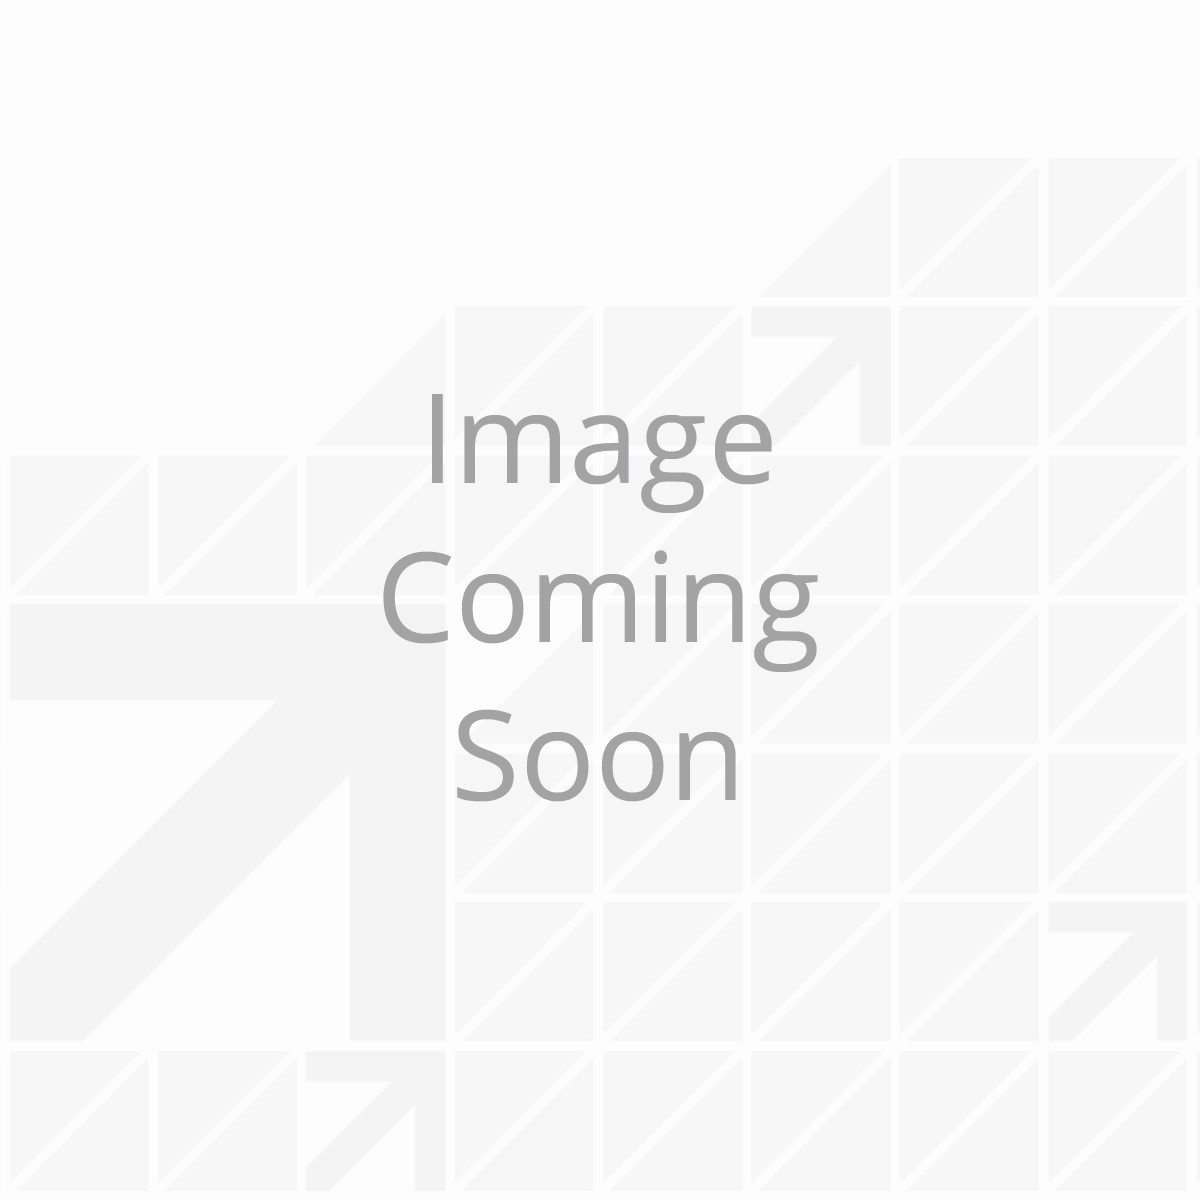 Lippert on Facebook